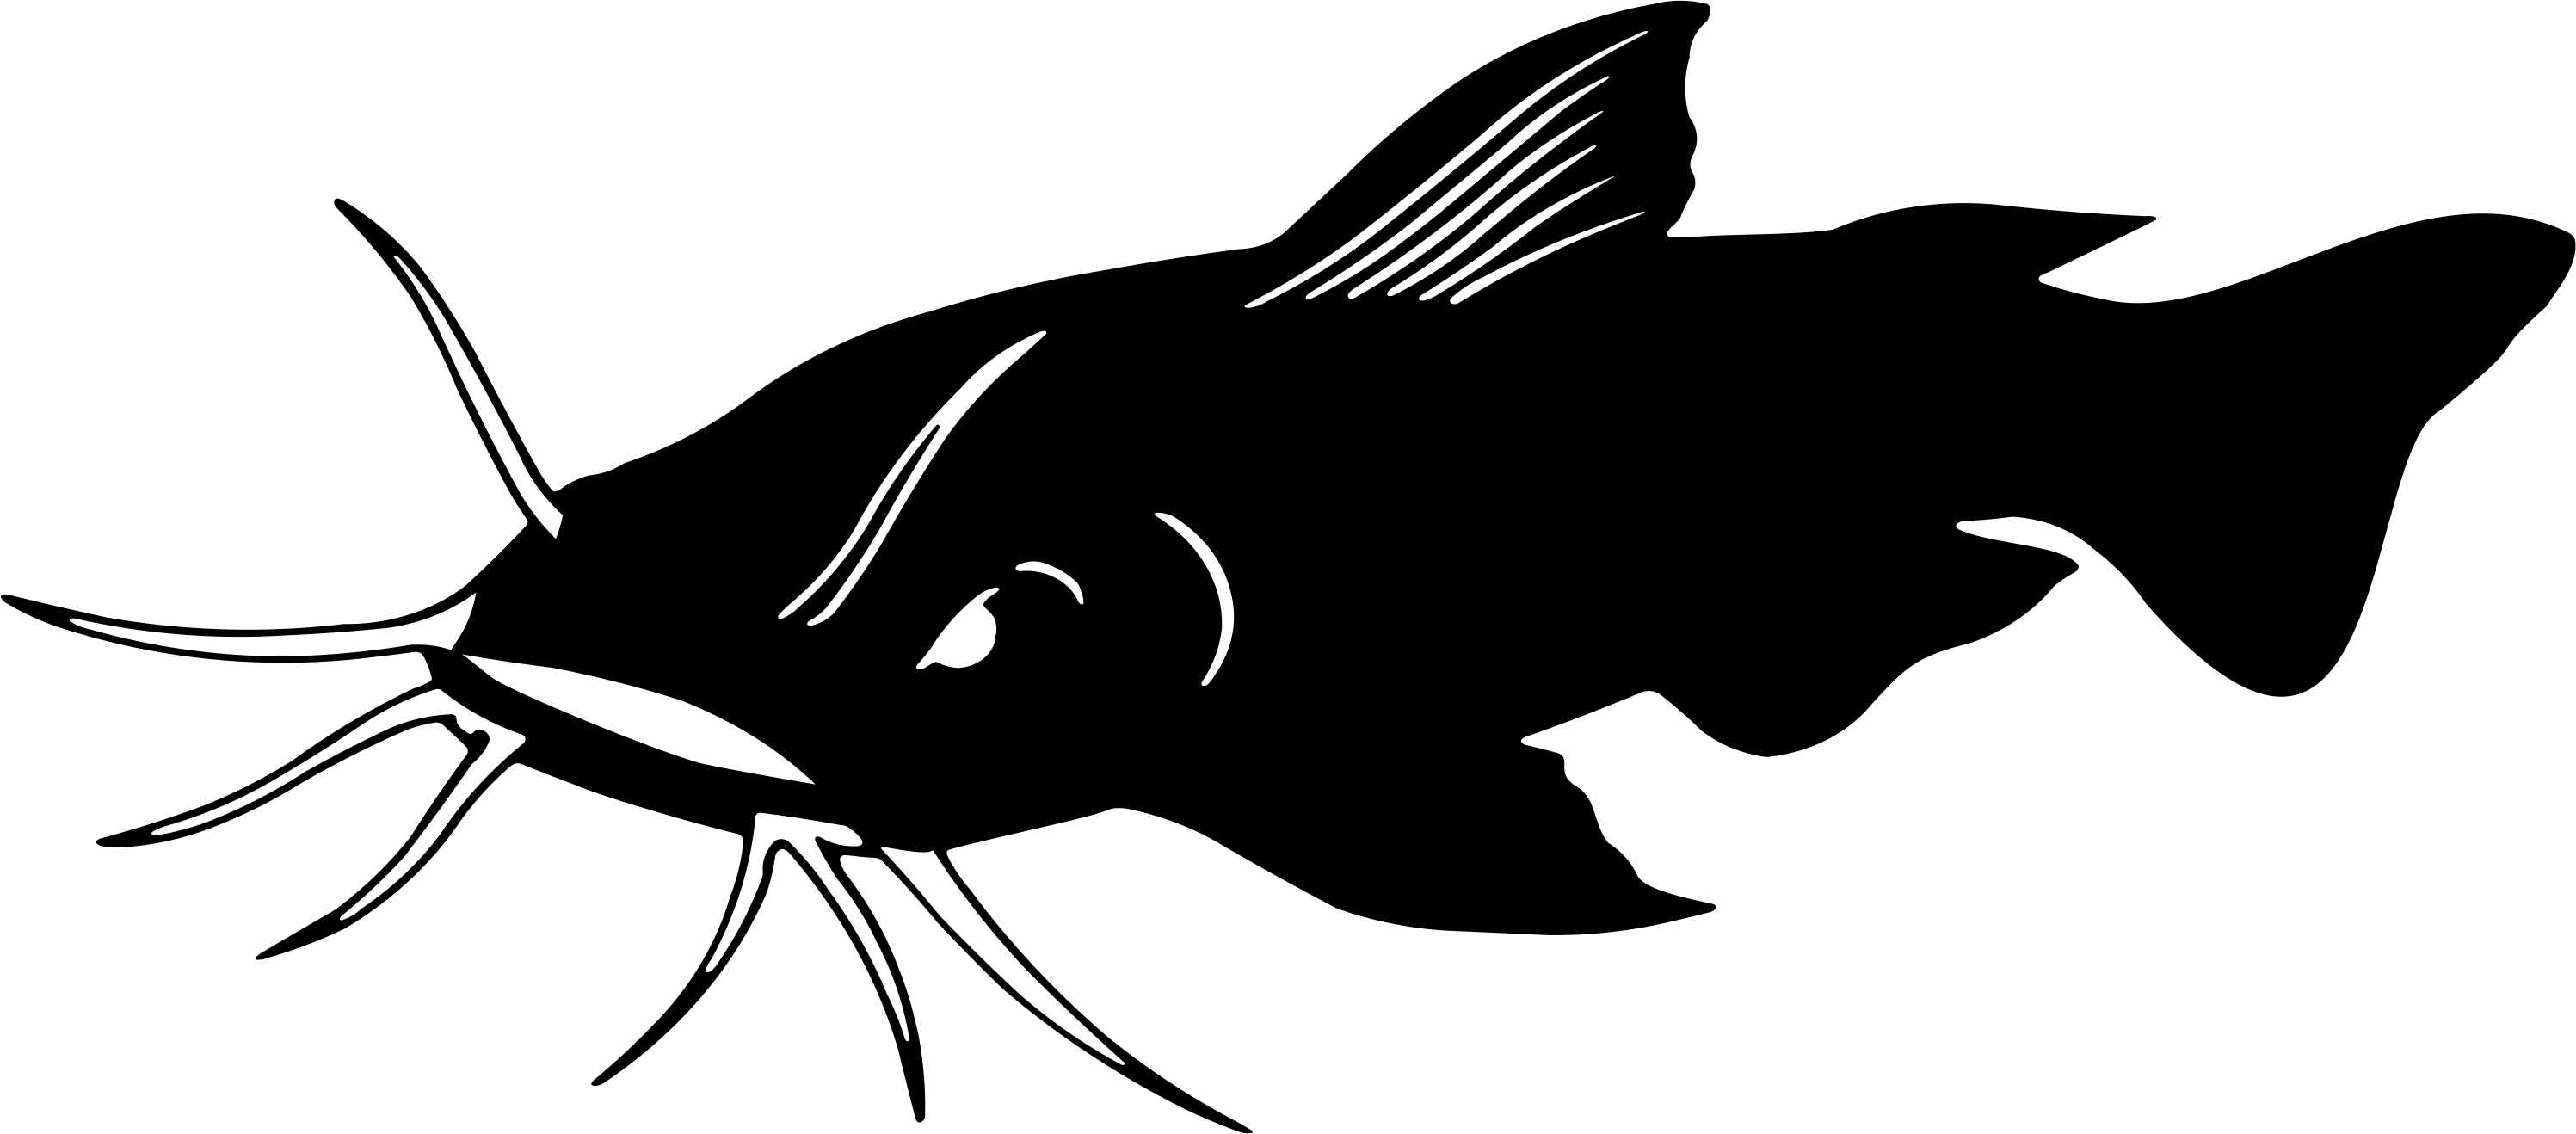 Fish Silhouette Navy Blue Clipart - Clipart Kid